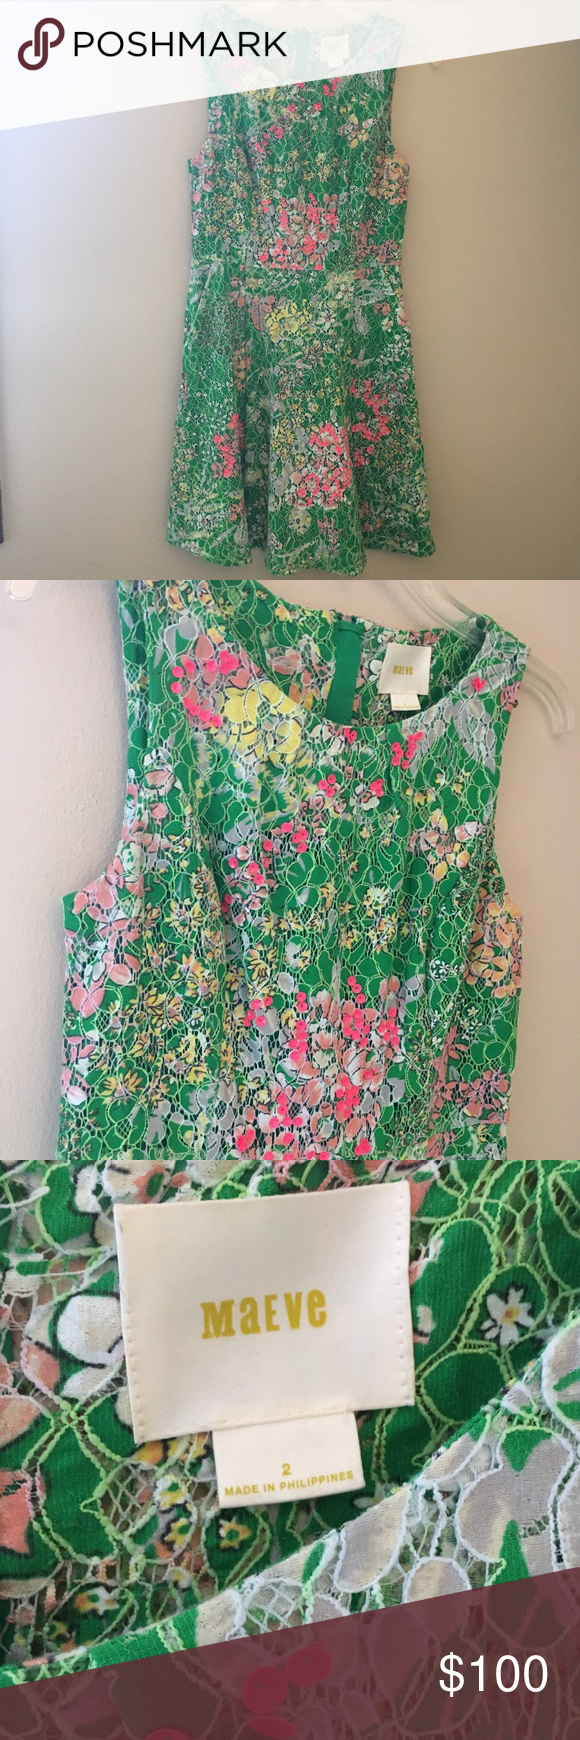 Green dress with lace overlay  Anthro Maeve Laced Verbena Sequin Floral Dress  My Posh Picks